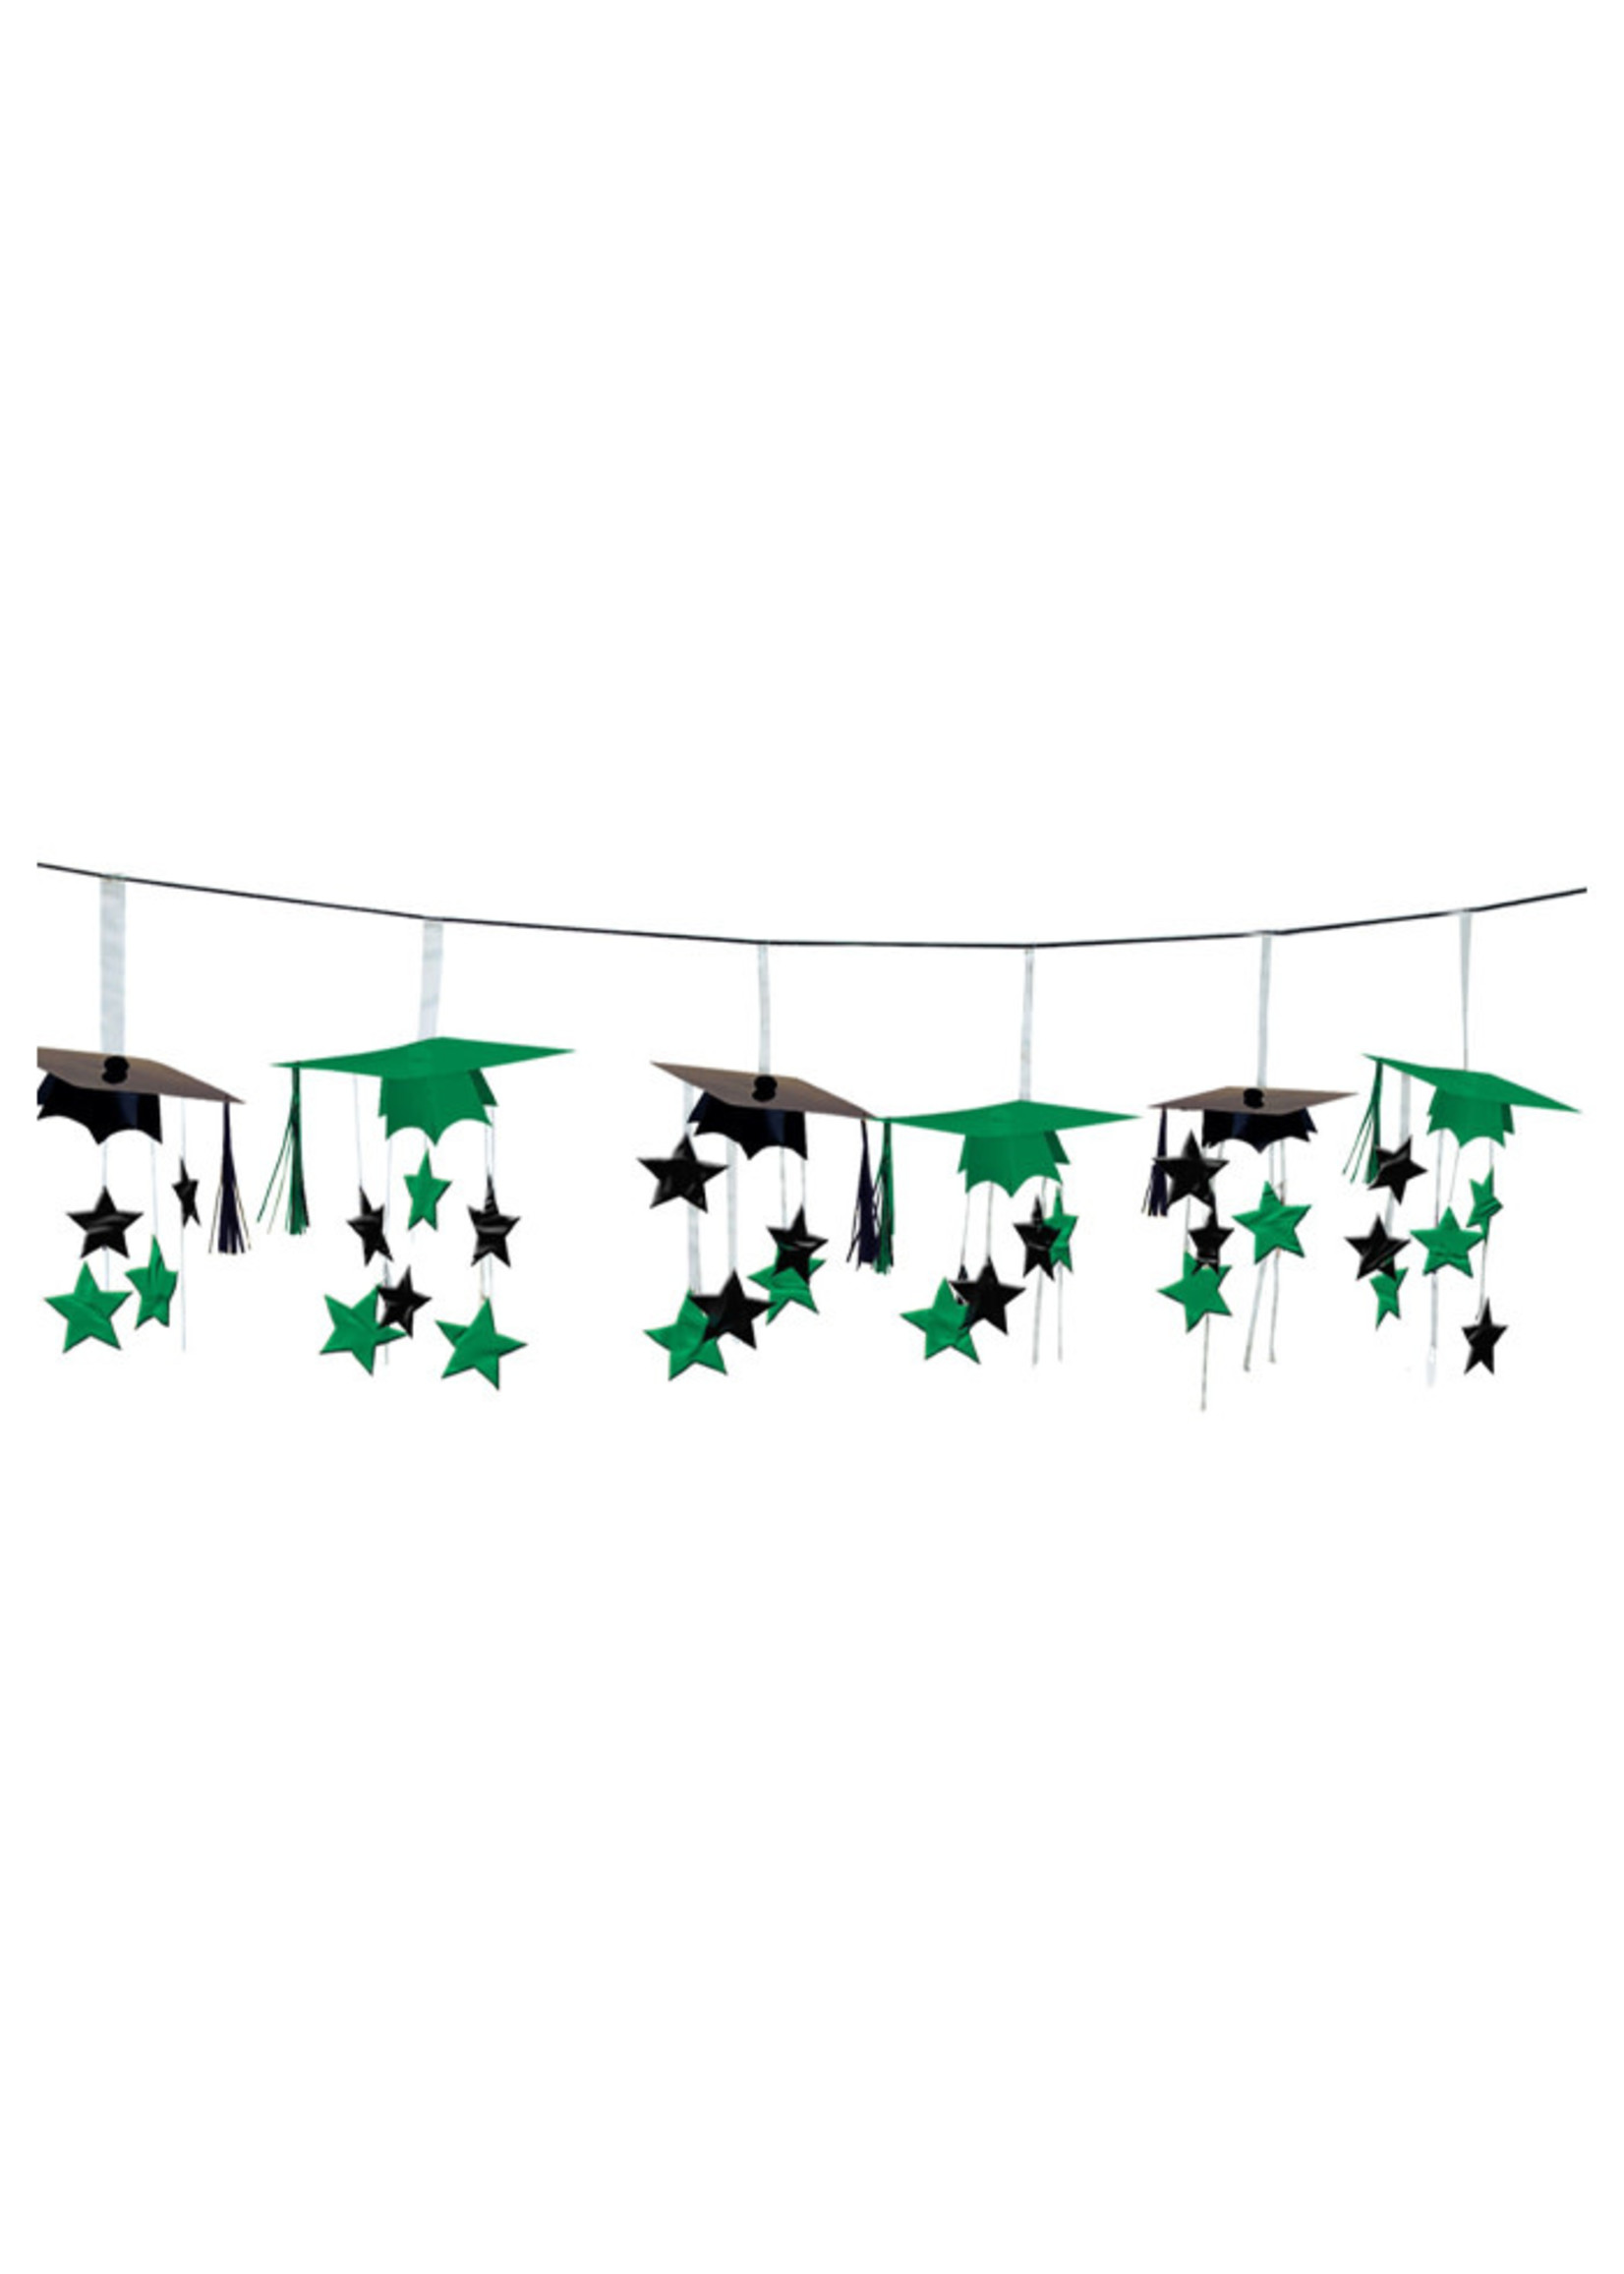 Green 3-D Foil Garland - 12ft